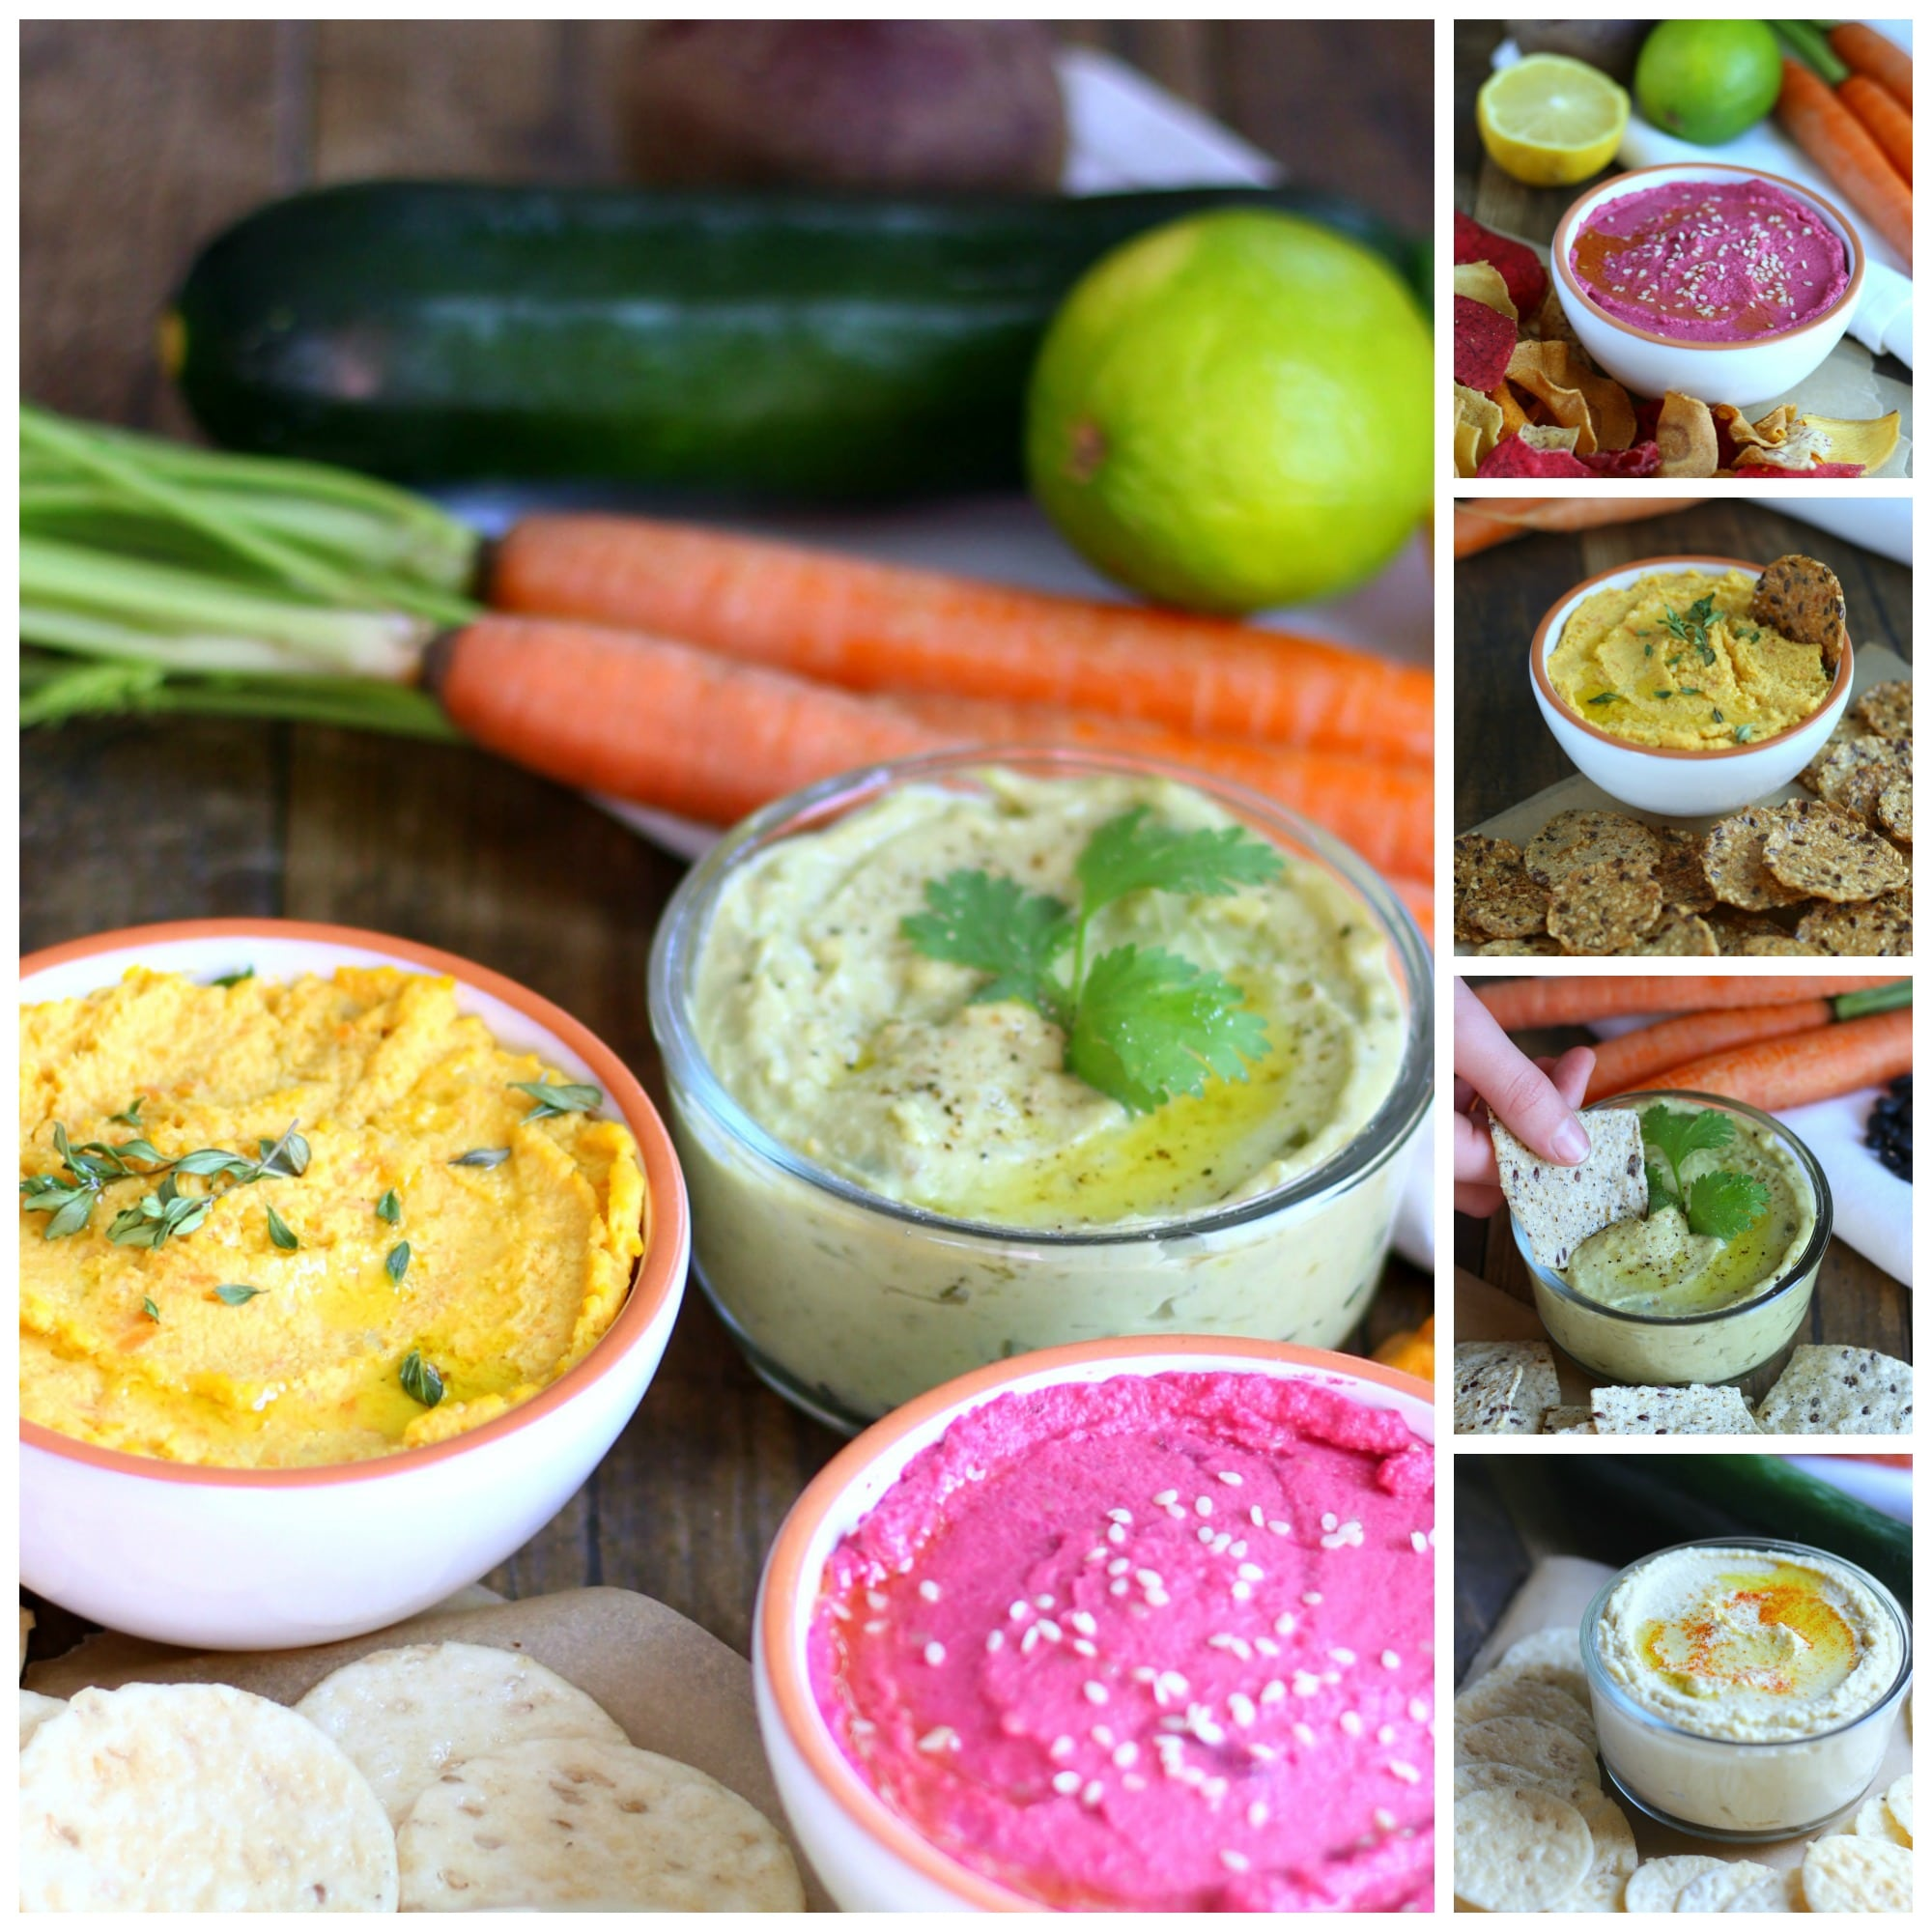 hese hummus recipes were created with you in mind focusing on your dietary needs without compromising the flavor, consistency and overall satisfaction that we all look for in a good hummus.